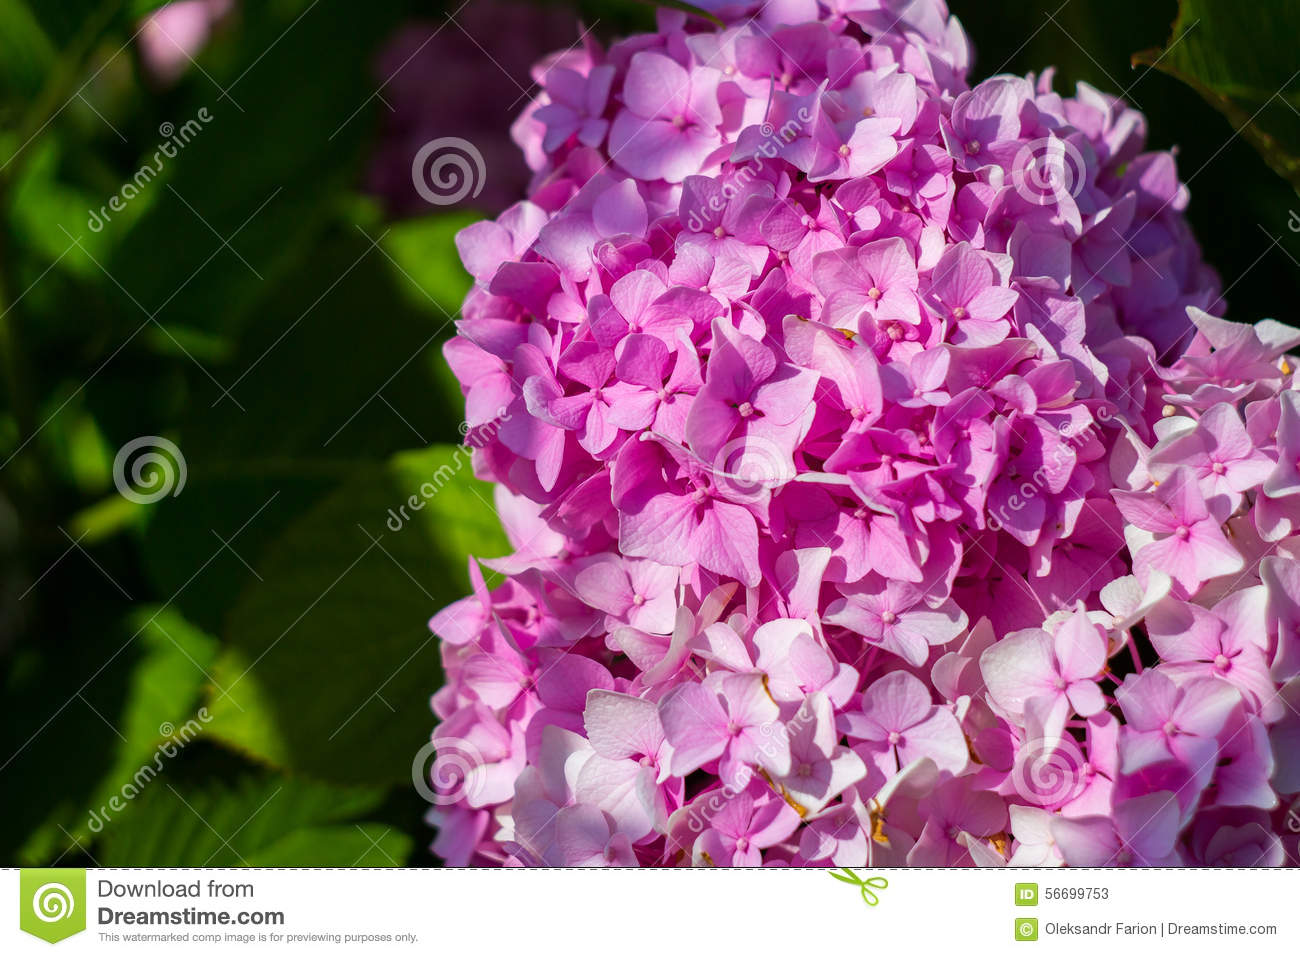 Bush Blooming Pink Flowers Stock Image Image Of Leaf 56699753